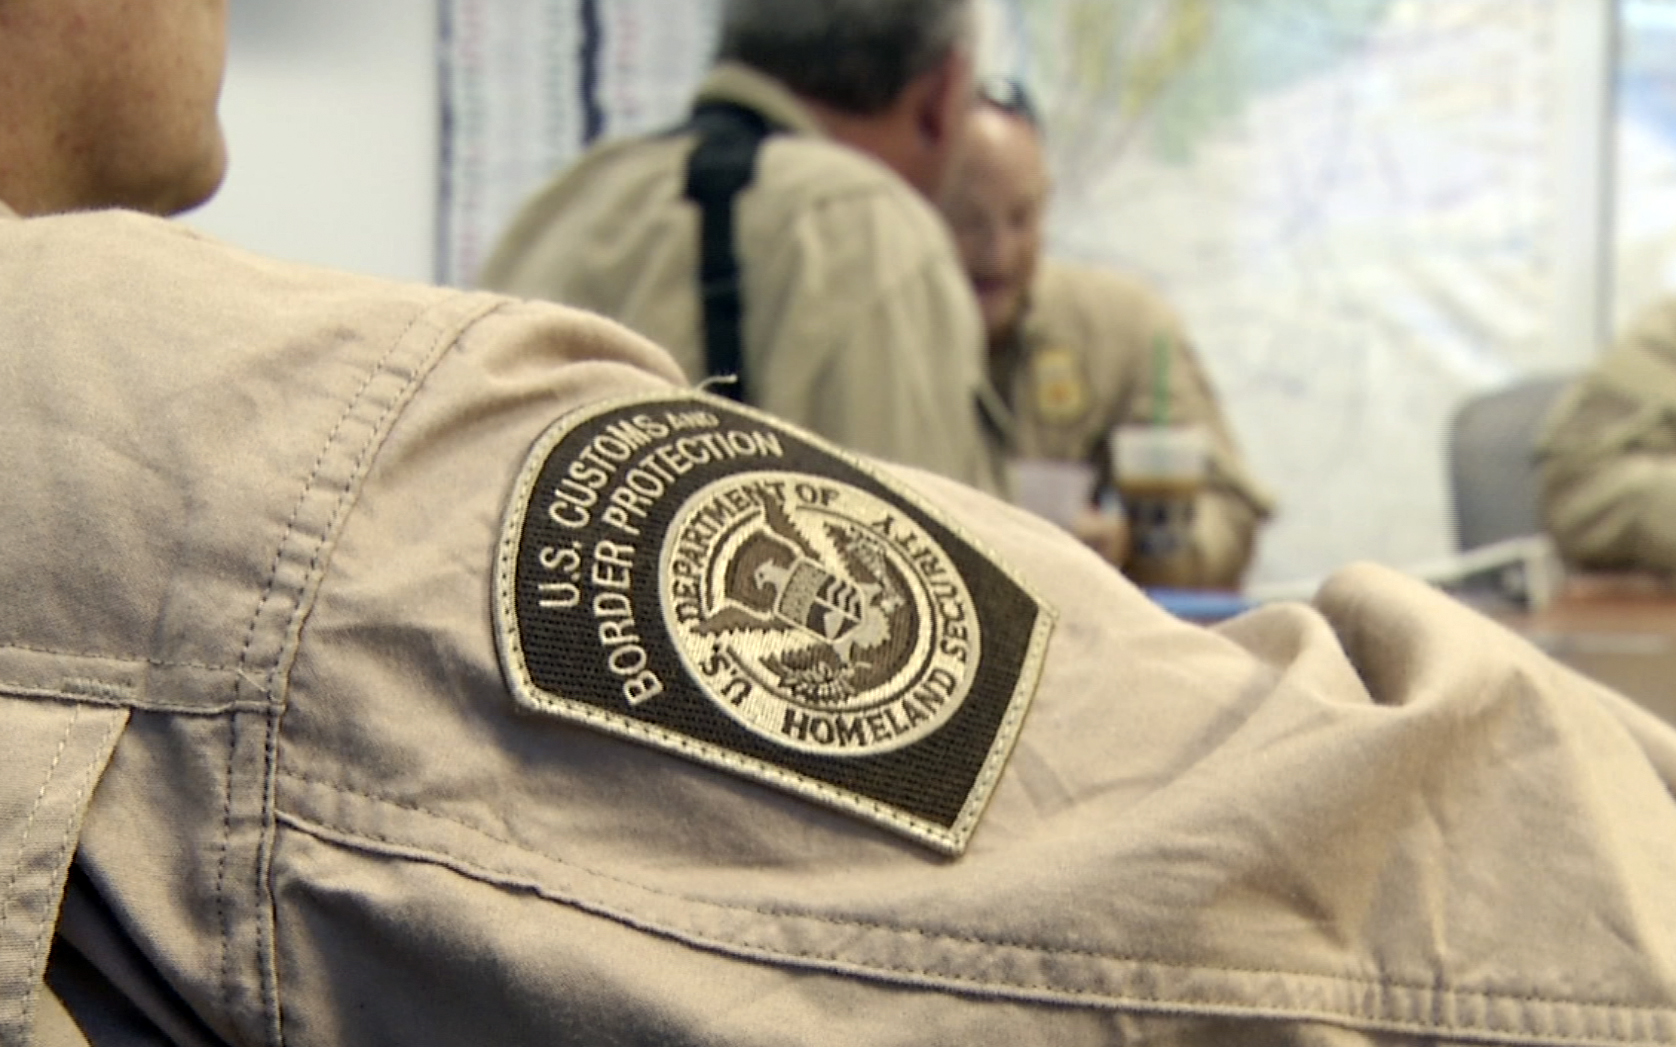 CBP ends Accenture hiring contract 'for convenience' | Federal News